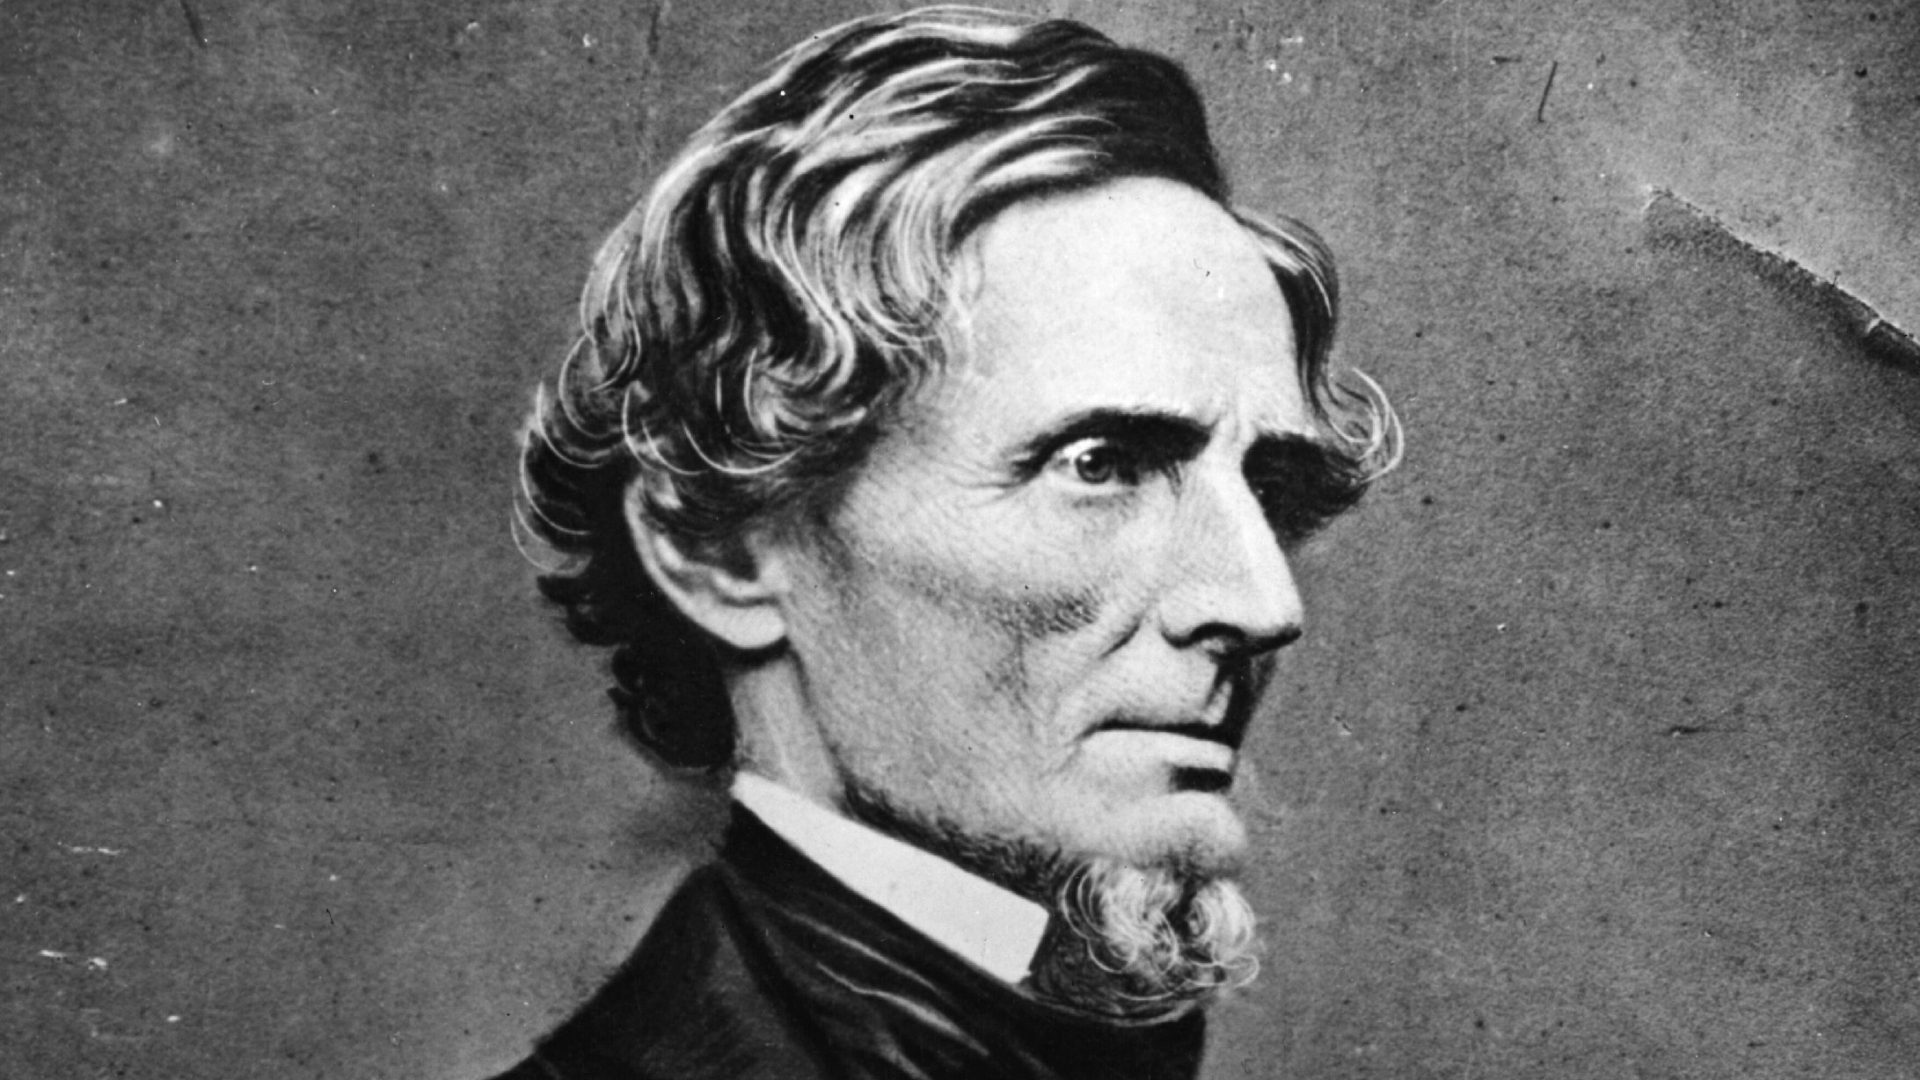 Jefferson Davis , the first and only President of the Confederate States of America, circa 1865. (Credit: Hulton Archive/Getty Images)